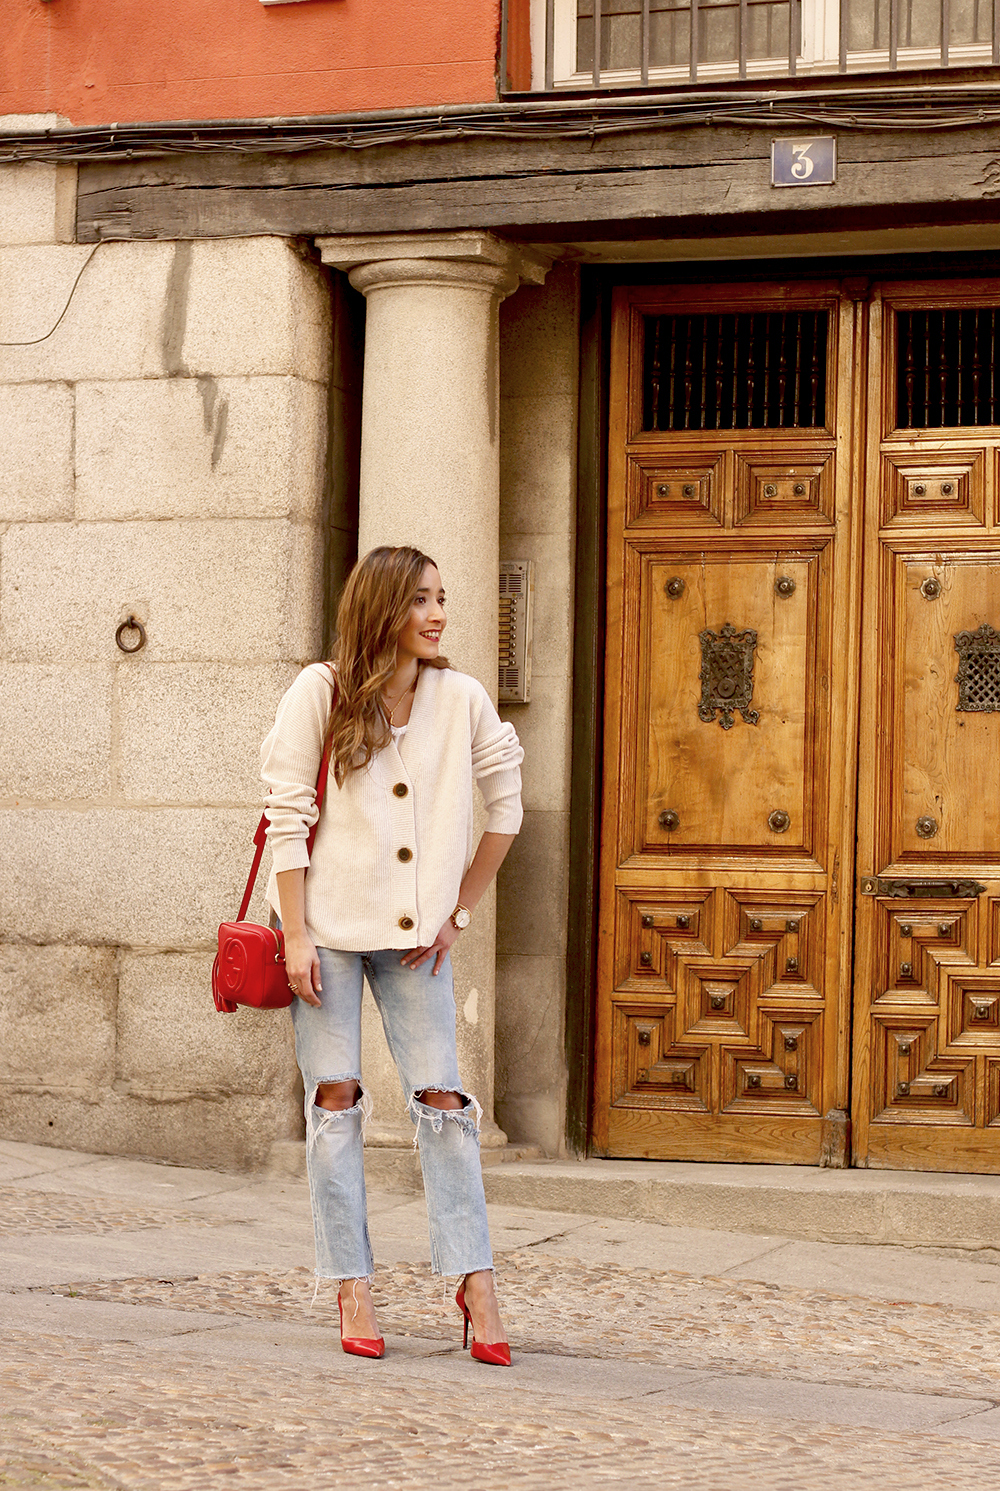 beige cardigan gucci bag red heels ripped jeans street style outfit 20195